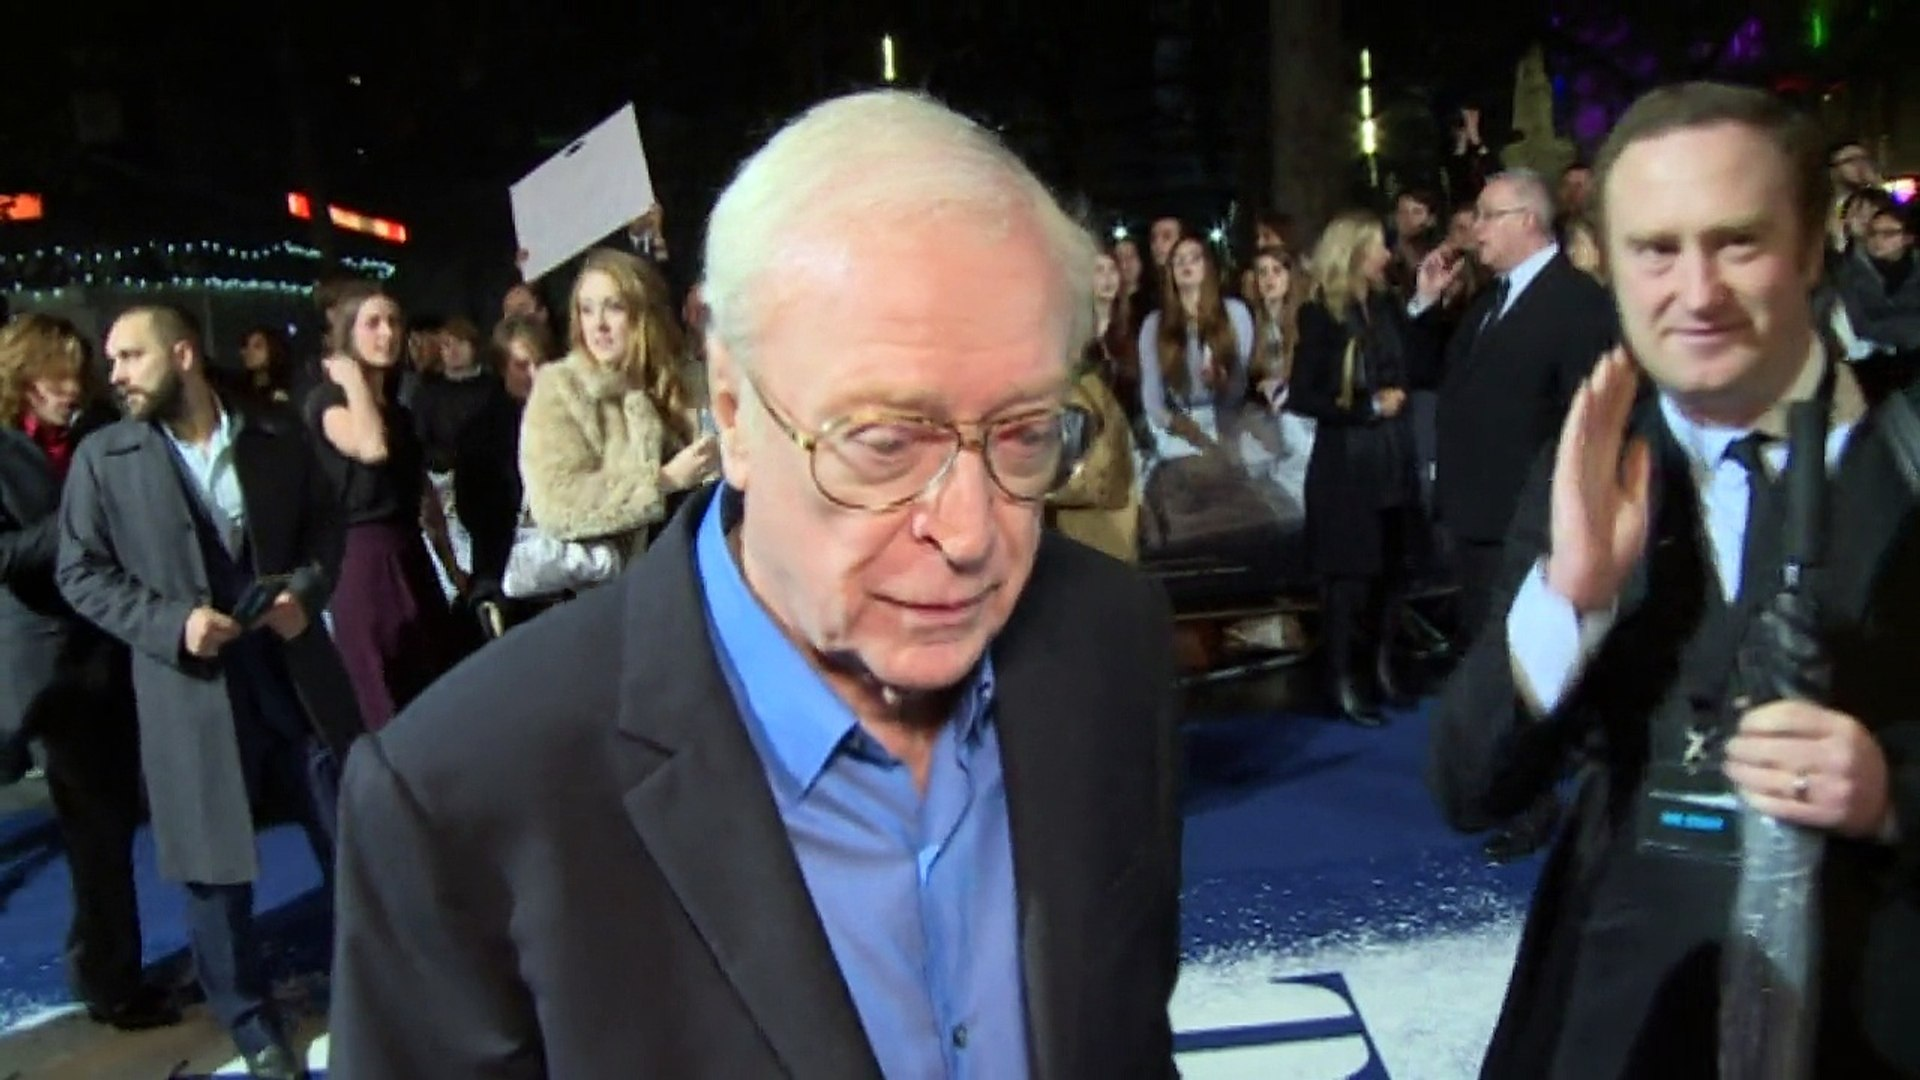 Michael Caine on Christopher Nolan having him on speed dial